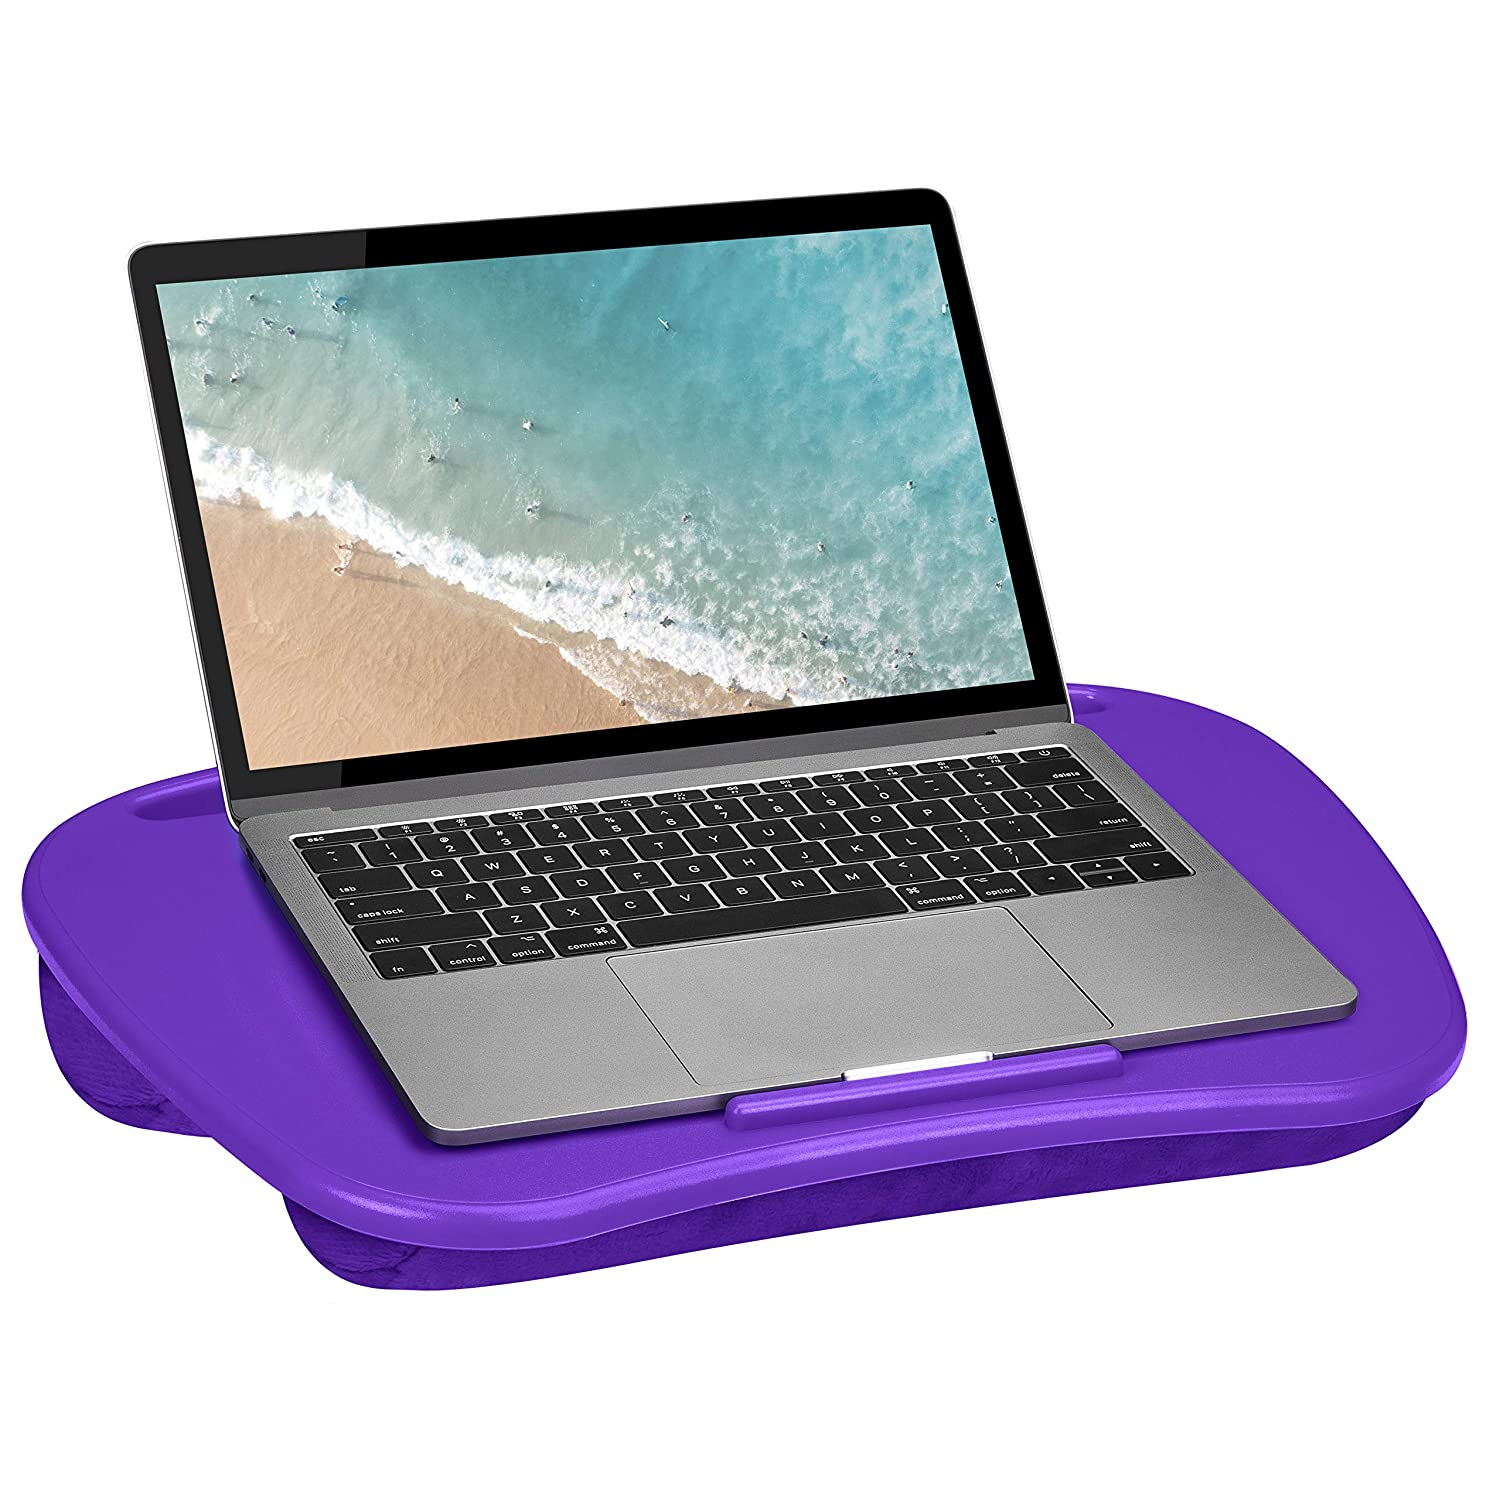 LapGear MyDesk Lap Desk with Device Ledge and Phone Holder - Purple - Fits up to 15.6 Inch Laptops - Style No. 44442